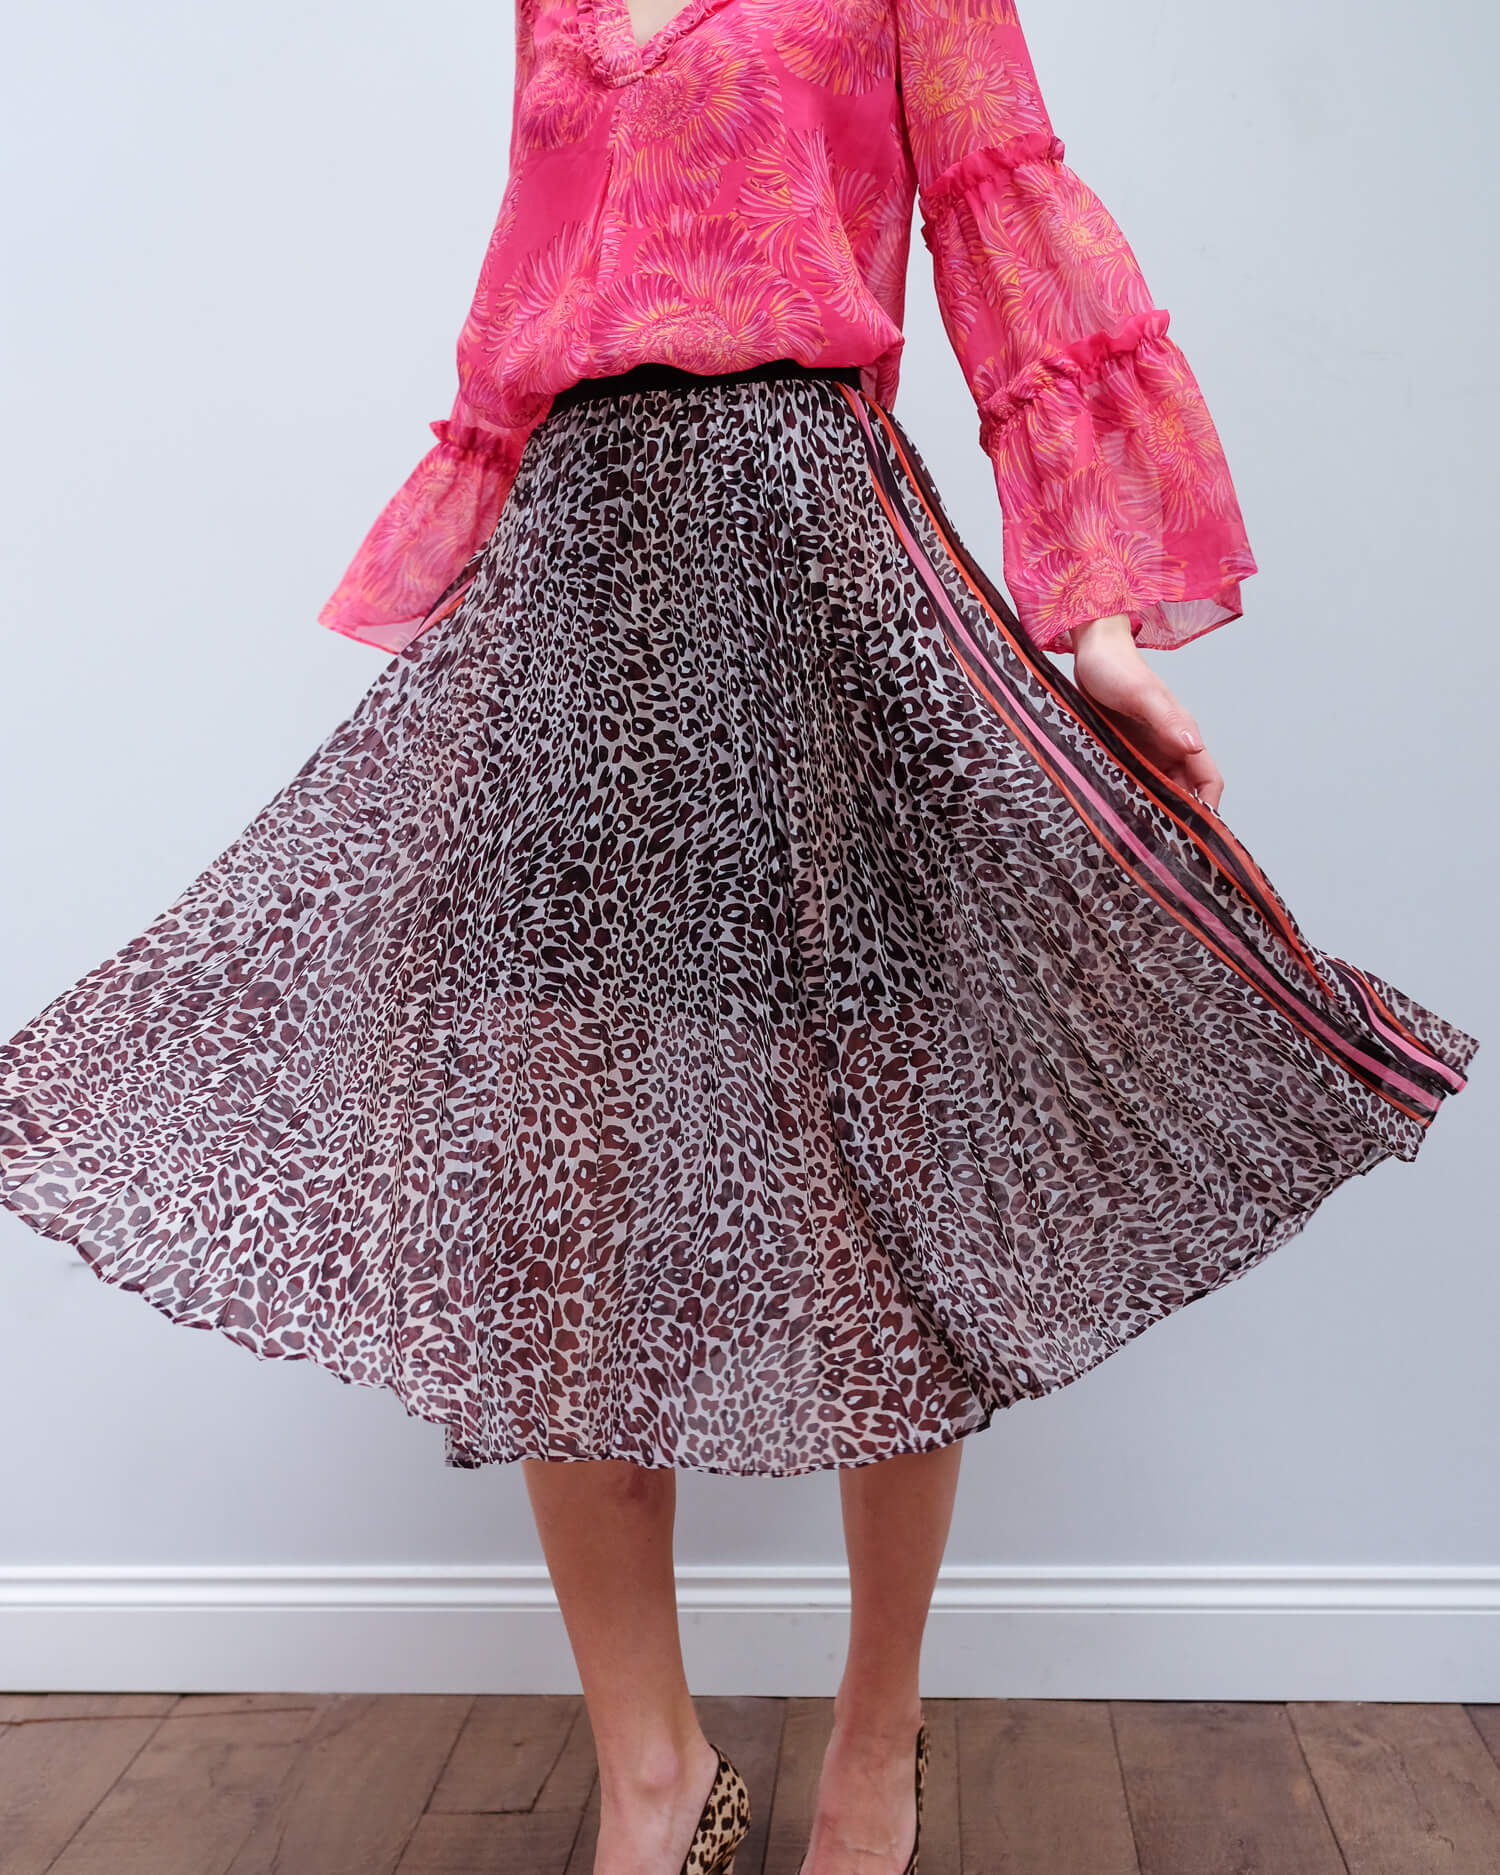 HB 4024 Leopard pleated skirt in brown